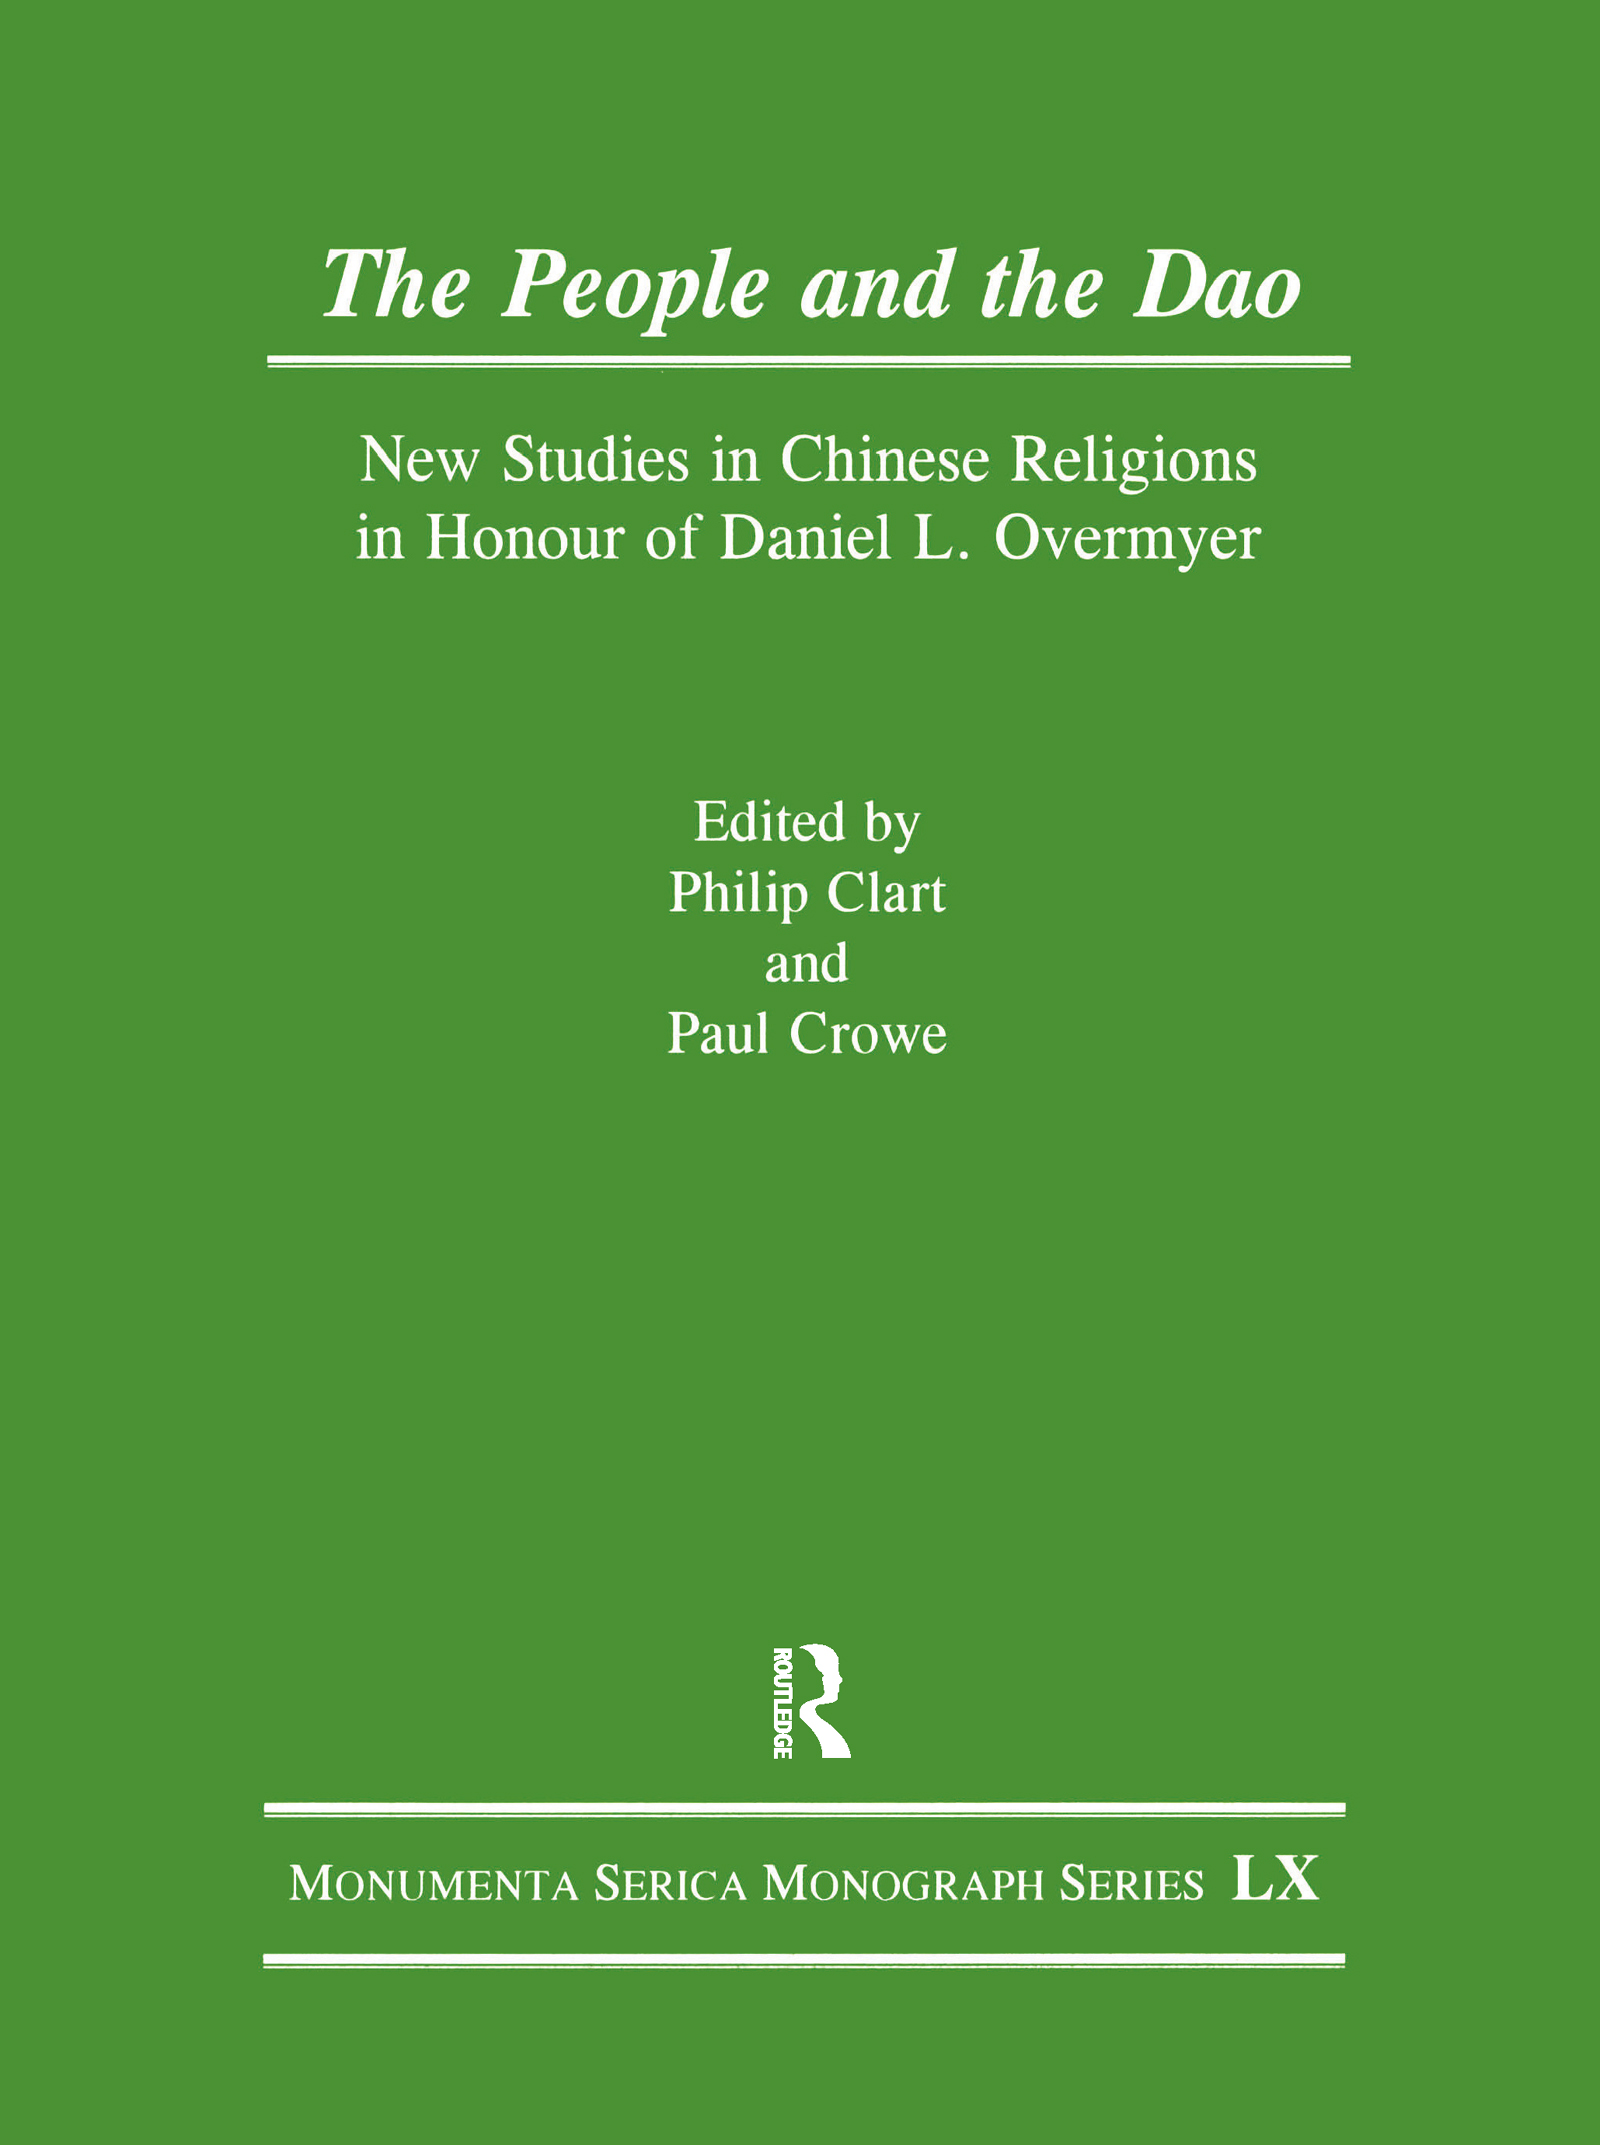 The People and the Dao: New Studies in Chinese Religions in Honour of Daniel L. Overmyer, 1st Edition (Hardback) book cover